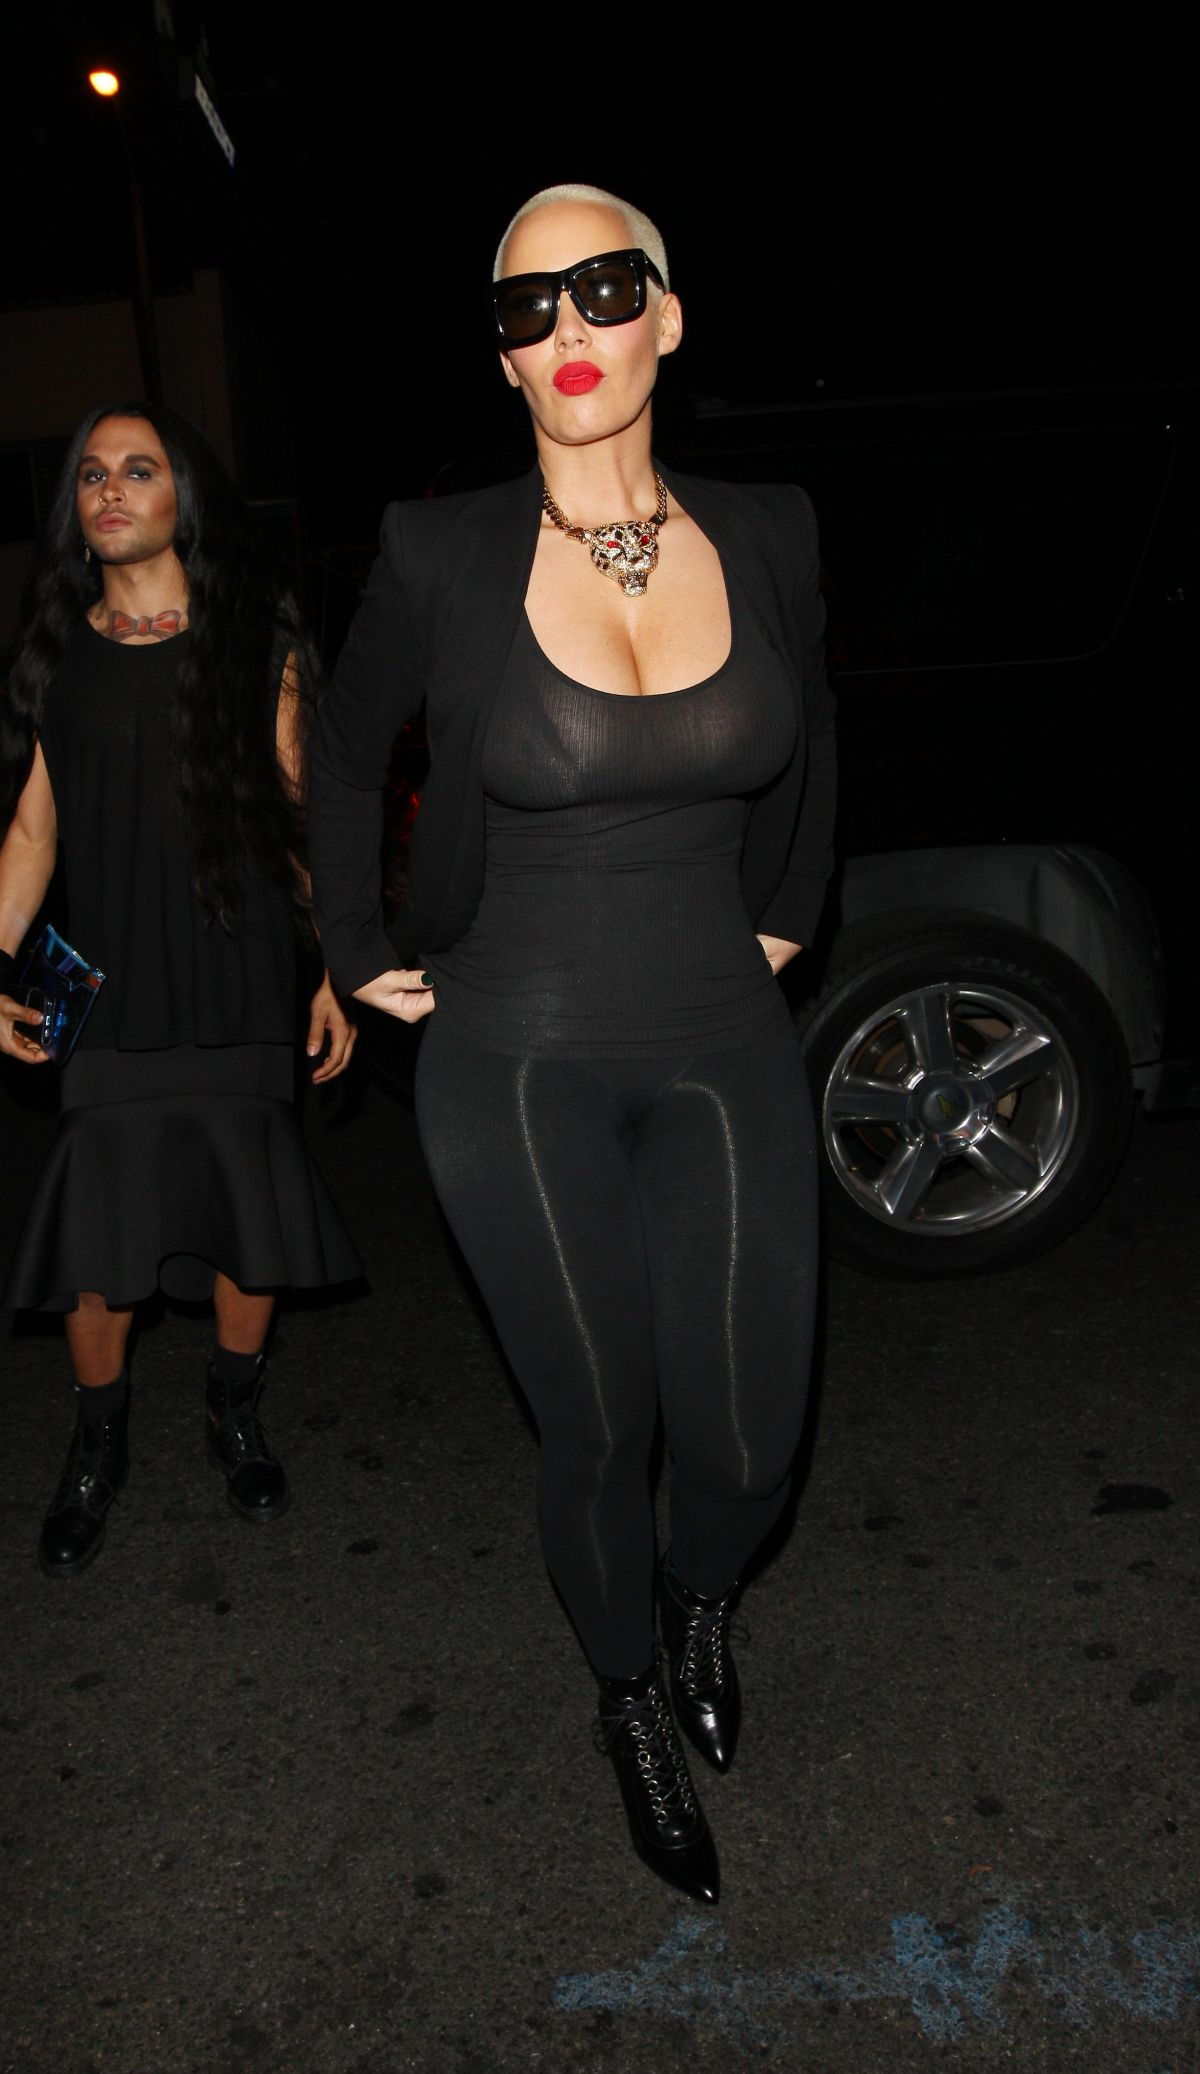 AMBER ROSE Arrives at 1 Oak Night Club in West Hollywood 11/10/2015